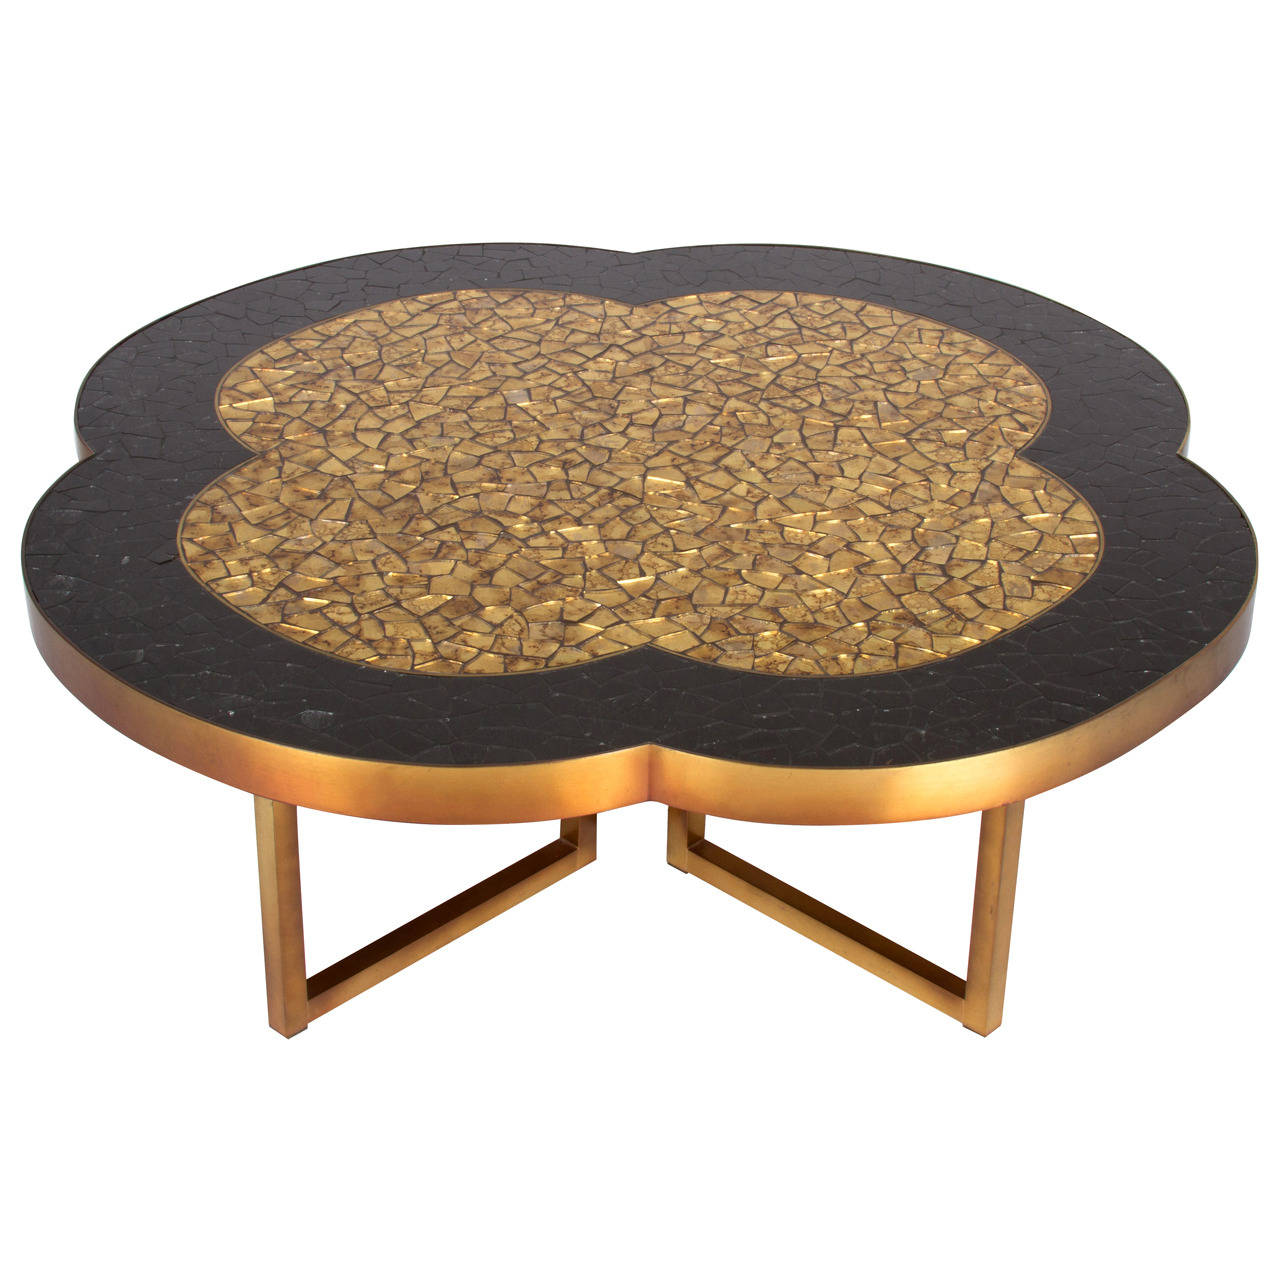 gold leaf and black glass mosaic quatrefoil coffee table ping wood accent runner lightweight concrete furniture dining set small round three piece bedroom chairs for spaces